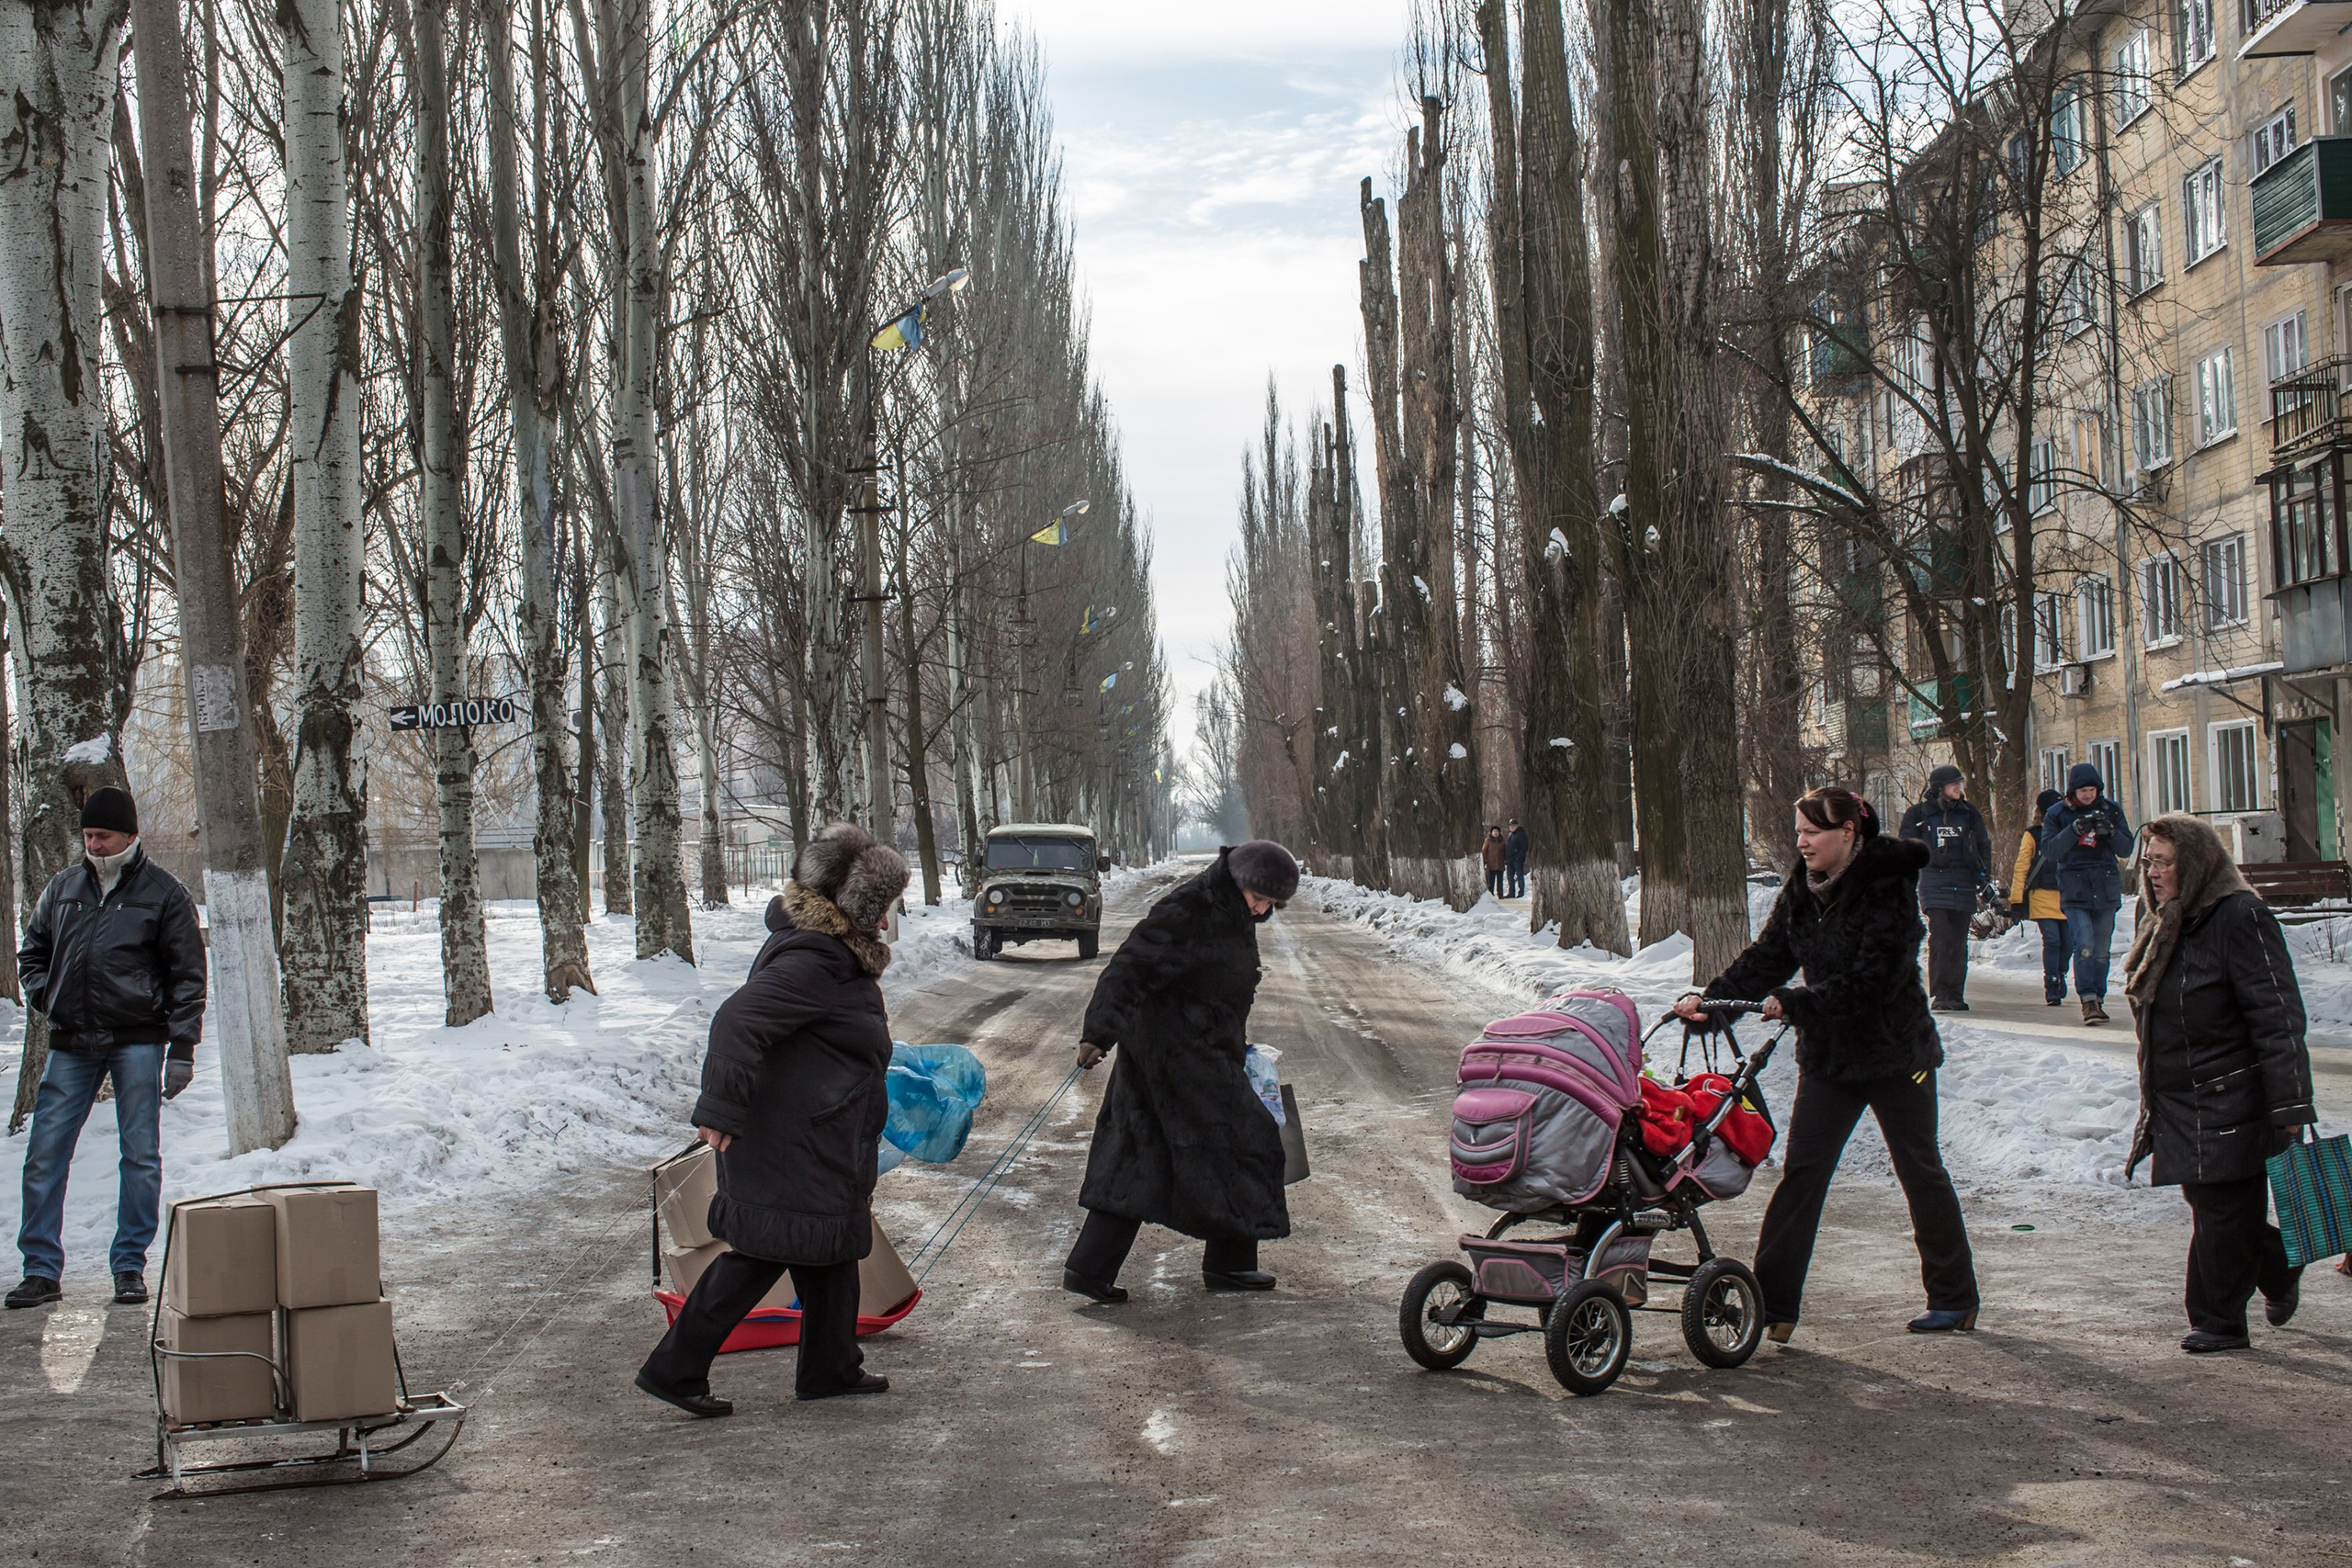 Residents carry boxes of humanitarian aid on sleds across the street after a night of shelling in Avdiivka, Ukraine, on Feb. 1, 2017.